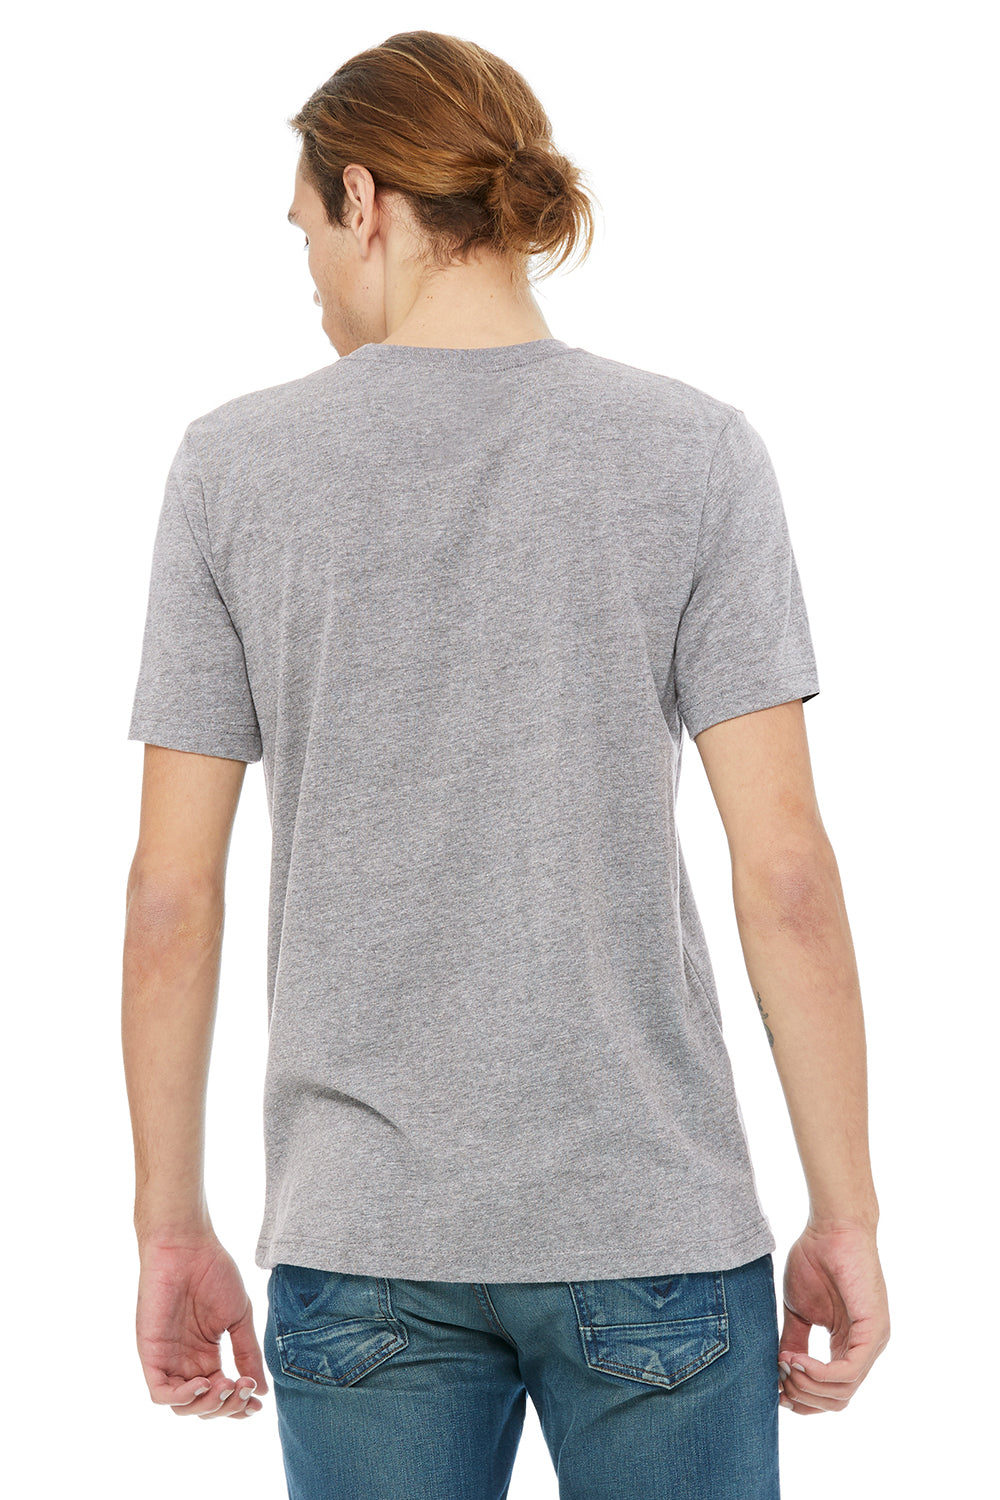 Bella + Canvas 3091 Mens Short Sleeve Crewneck T-Shirt Heather Grey Back